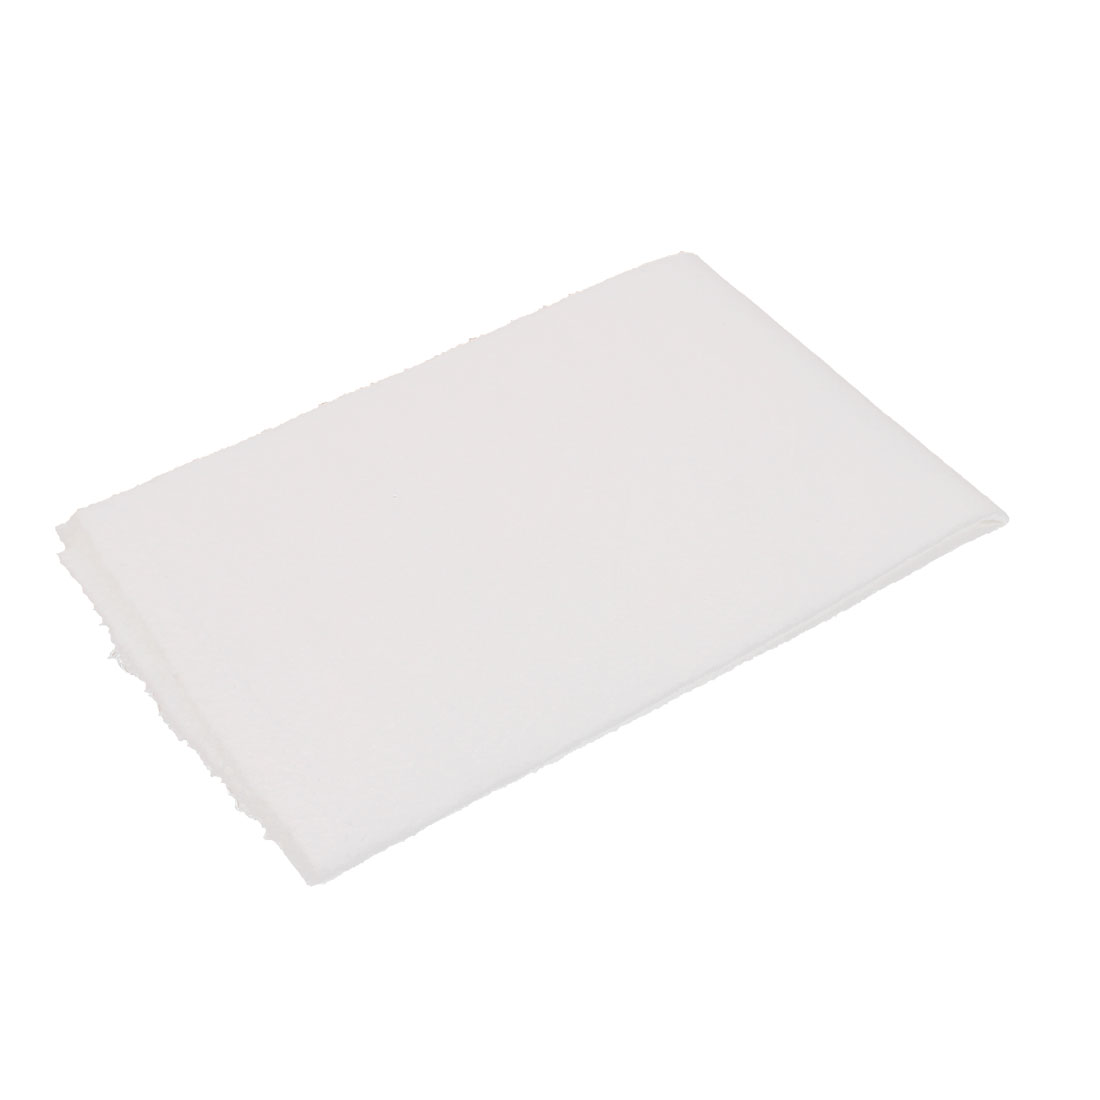 50cm x 43cm Microfiber Cleaning Polishing Cloth Car Valeting Towel White